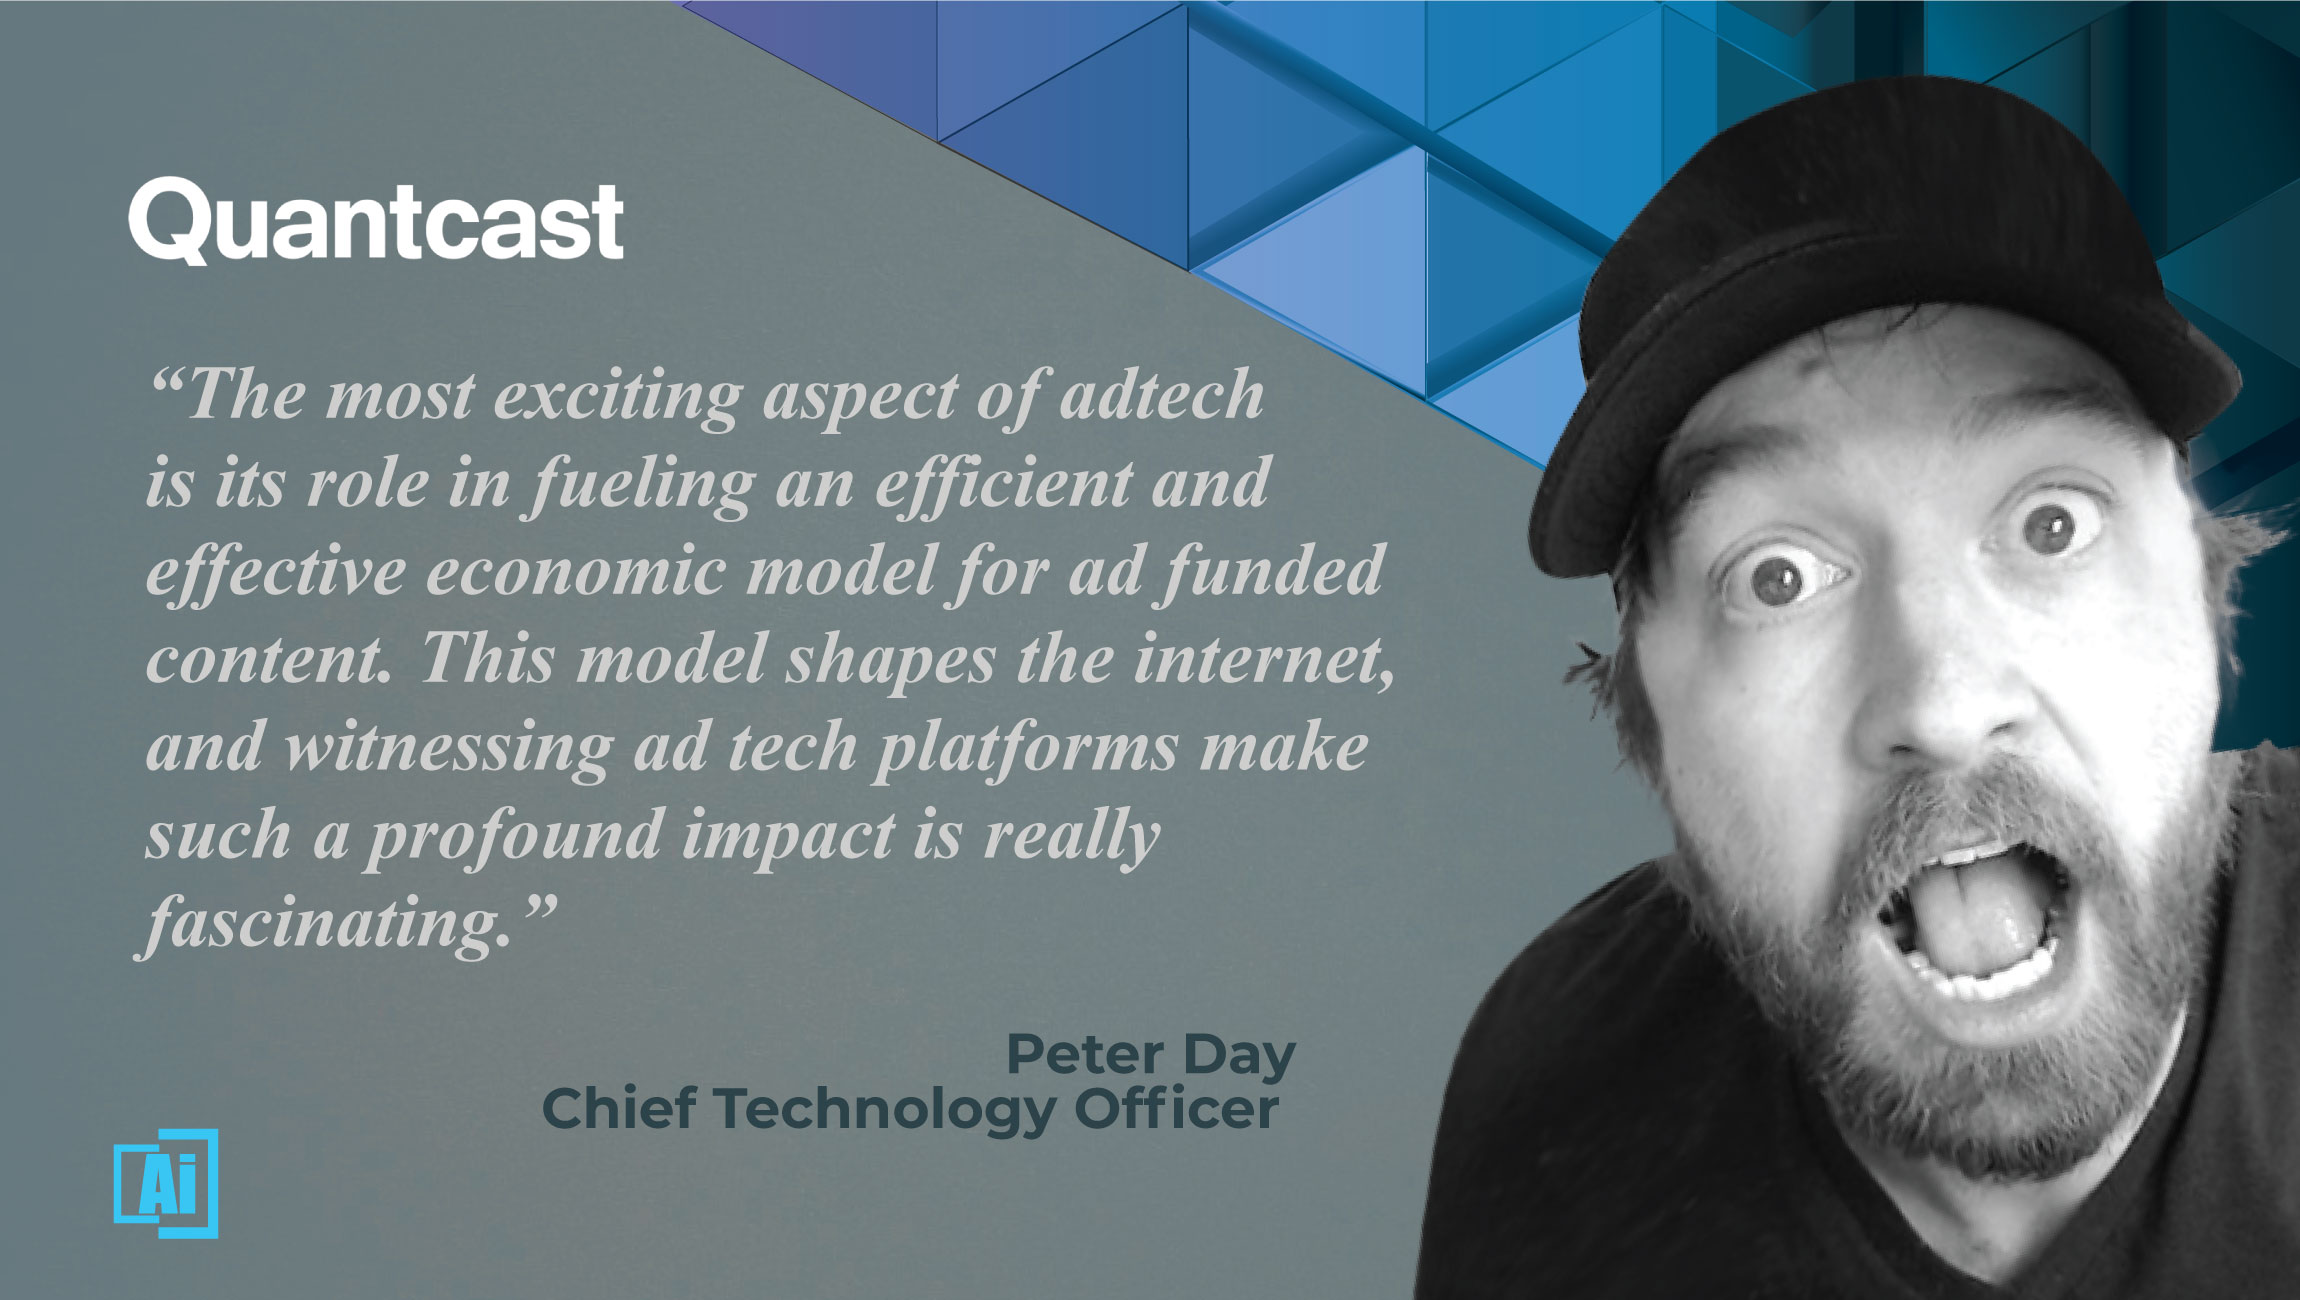 AiThority Interview with Peter Day, Chief Technology Officer at Quantcast